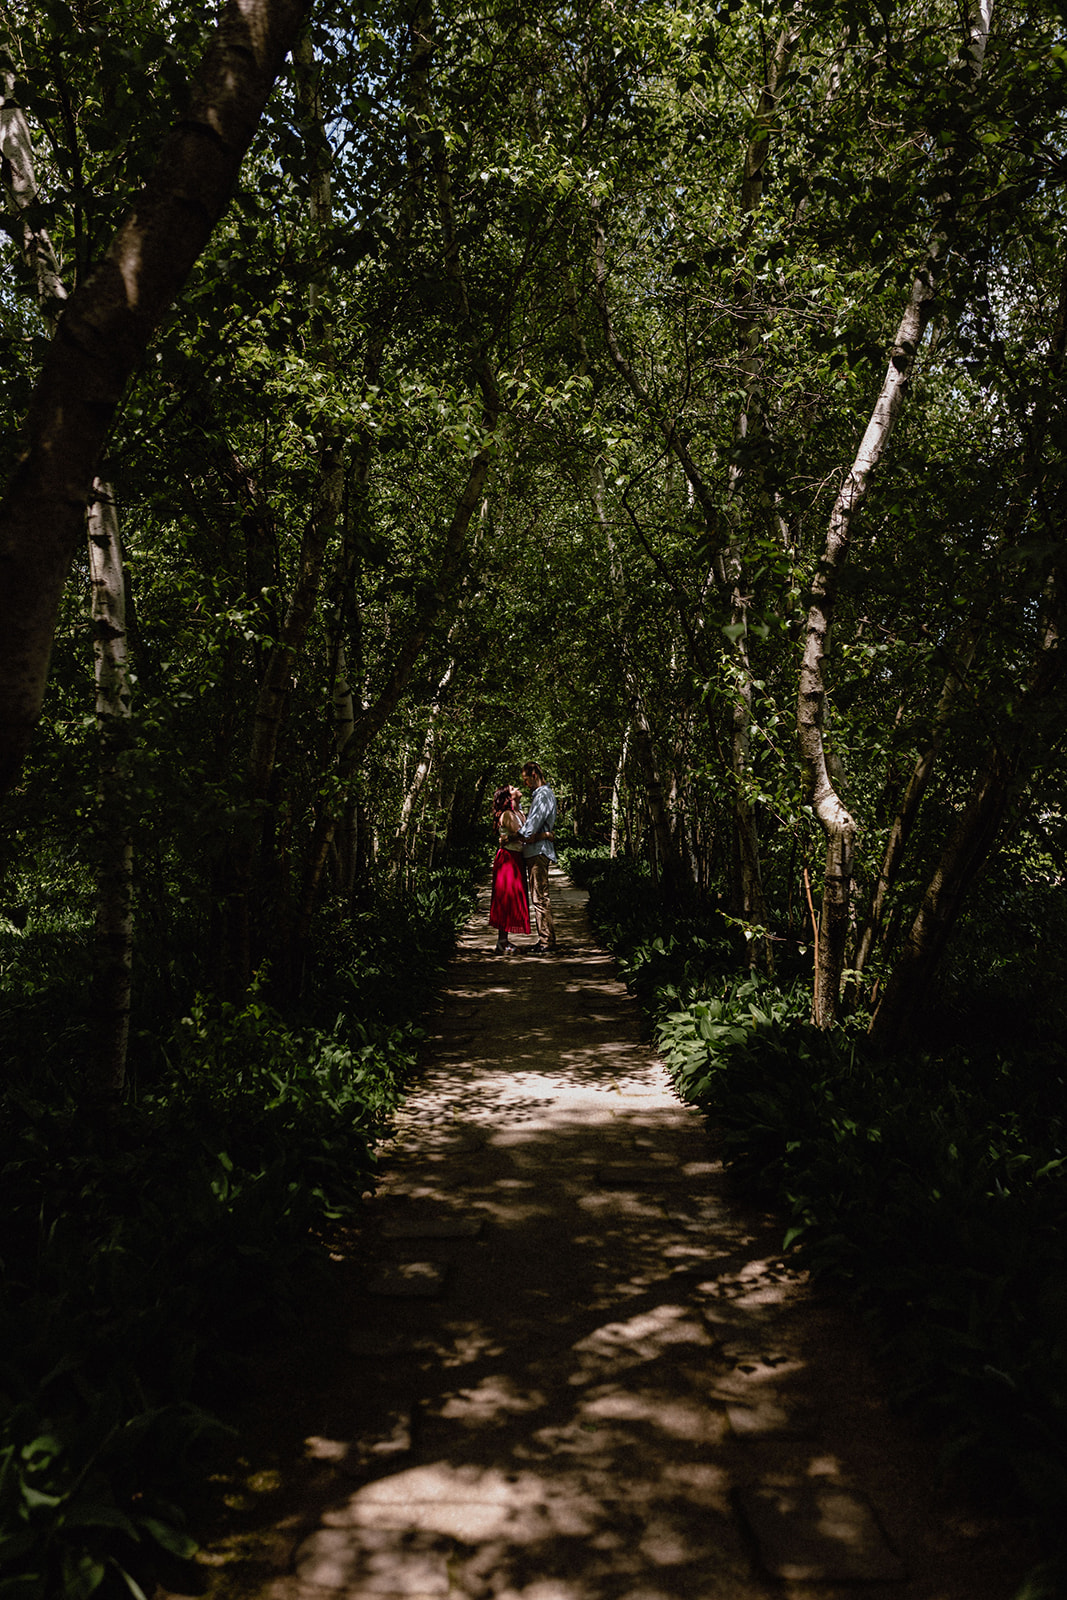 stan hywet engagement session - lana + zach 52